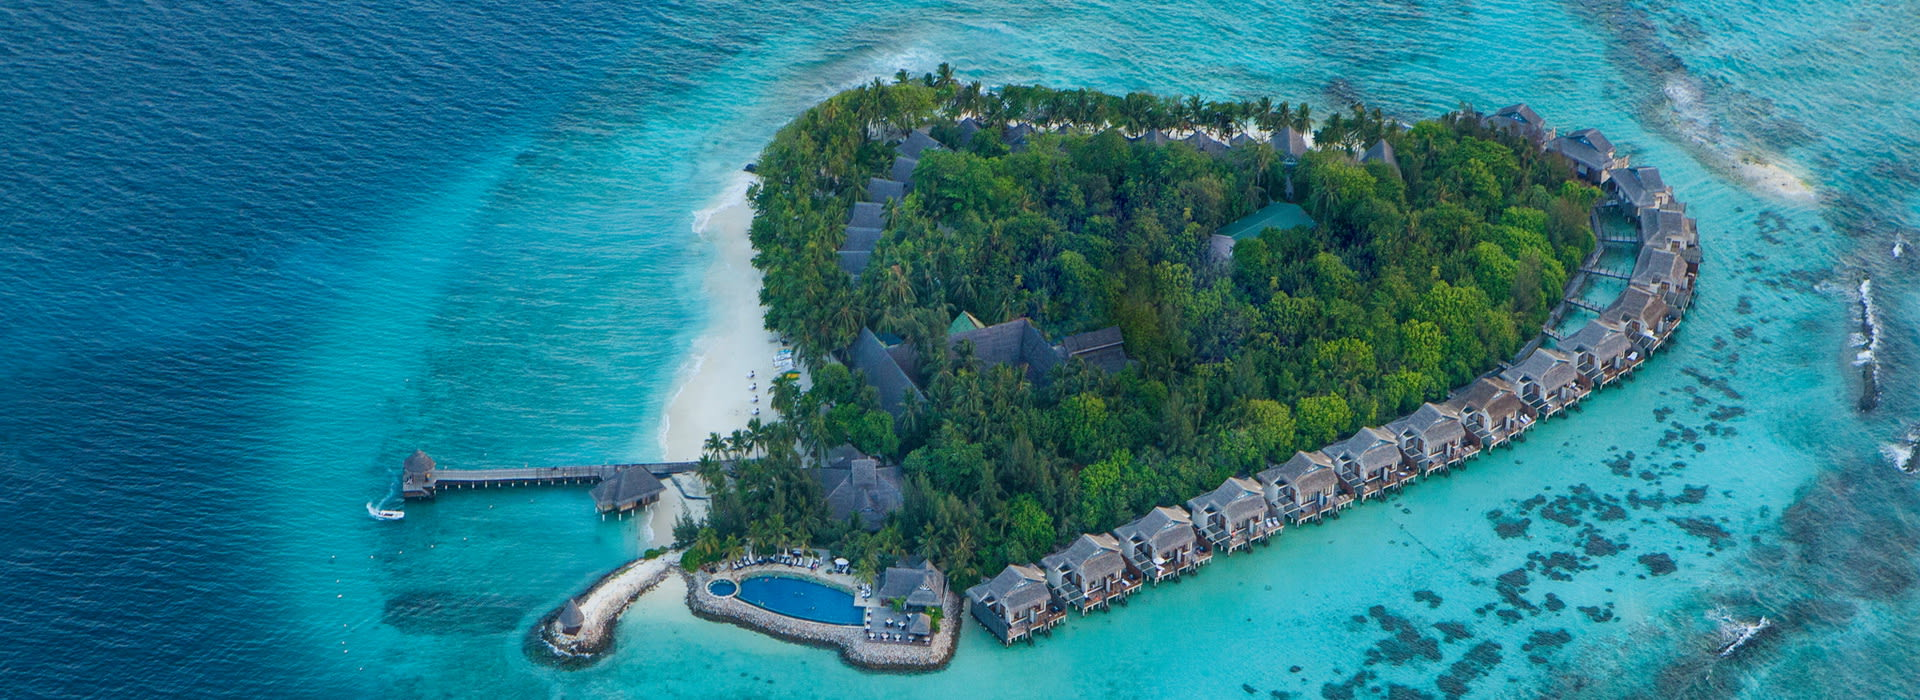 Globotours Sri Lanka Amp Maldives Vacations Honeymoon